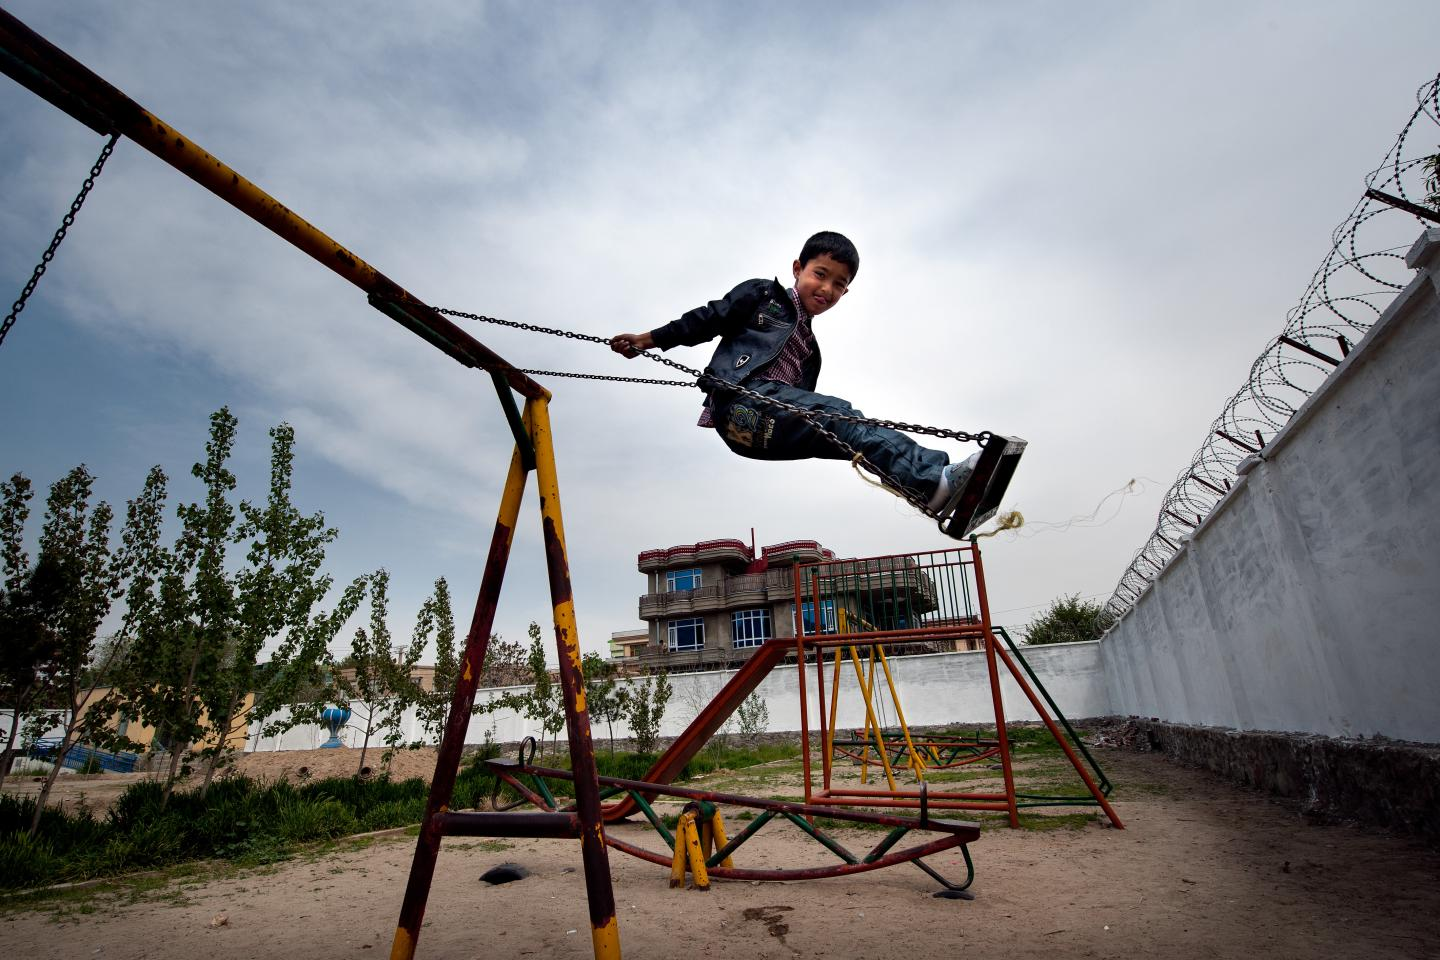 A boy swings on the playground of a day care centre in Kabul, Afghanistan.